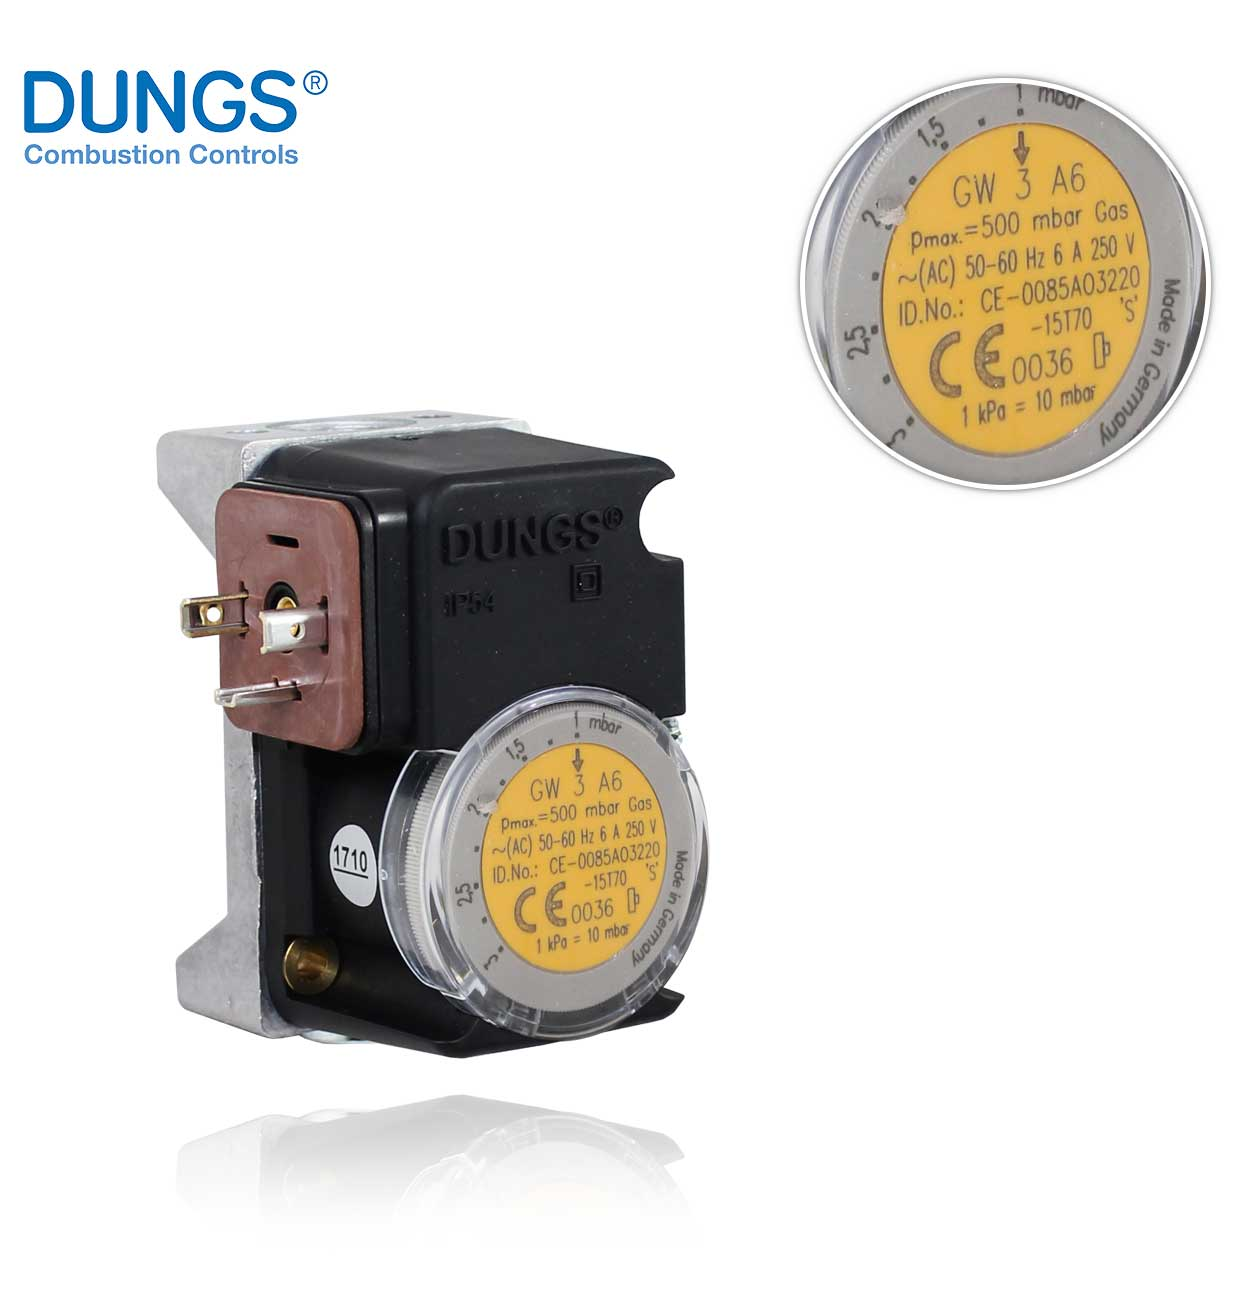 GW   3 A6  (A4)  1 - 3.0mbar. PRESSURE SWITCH DUNGS